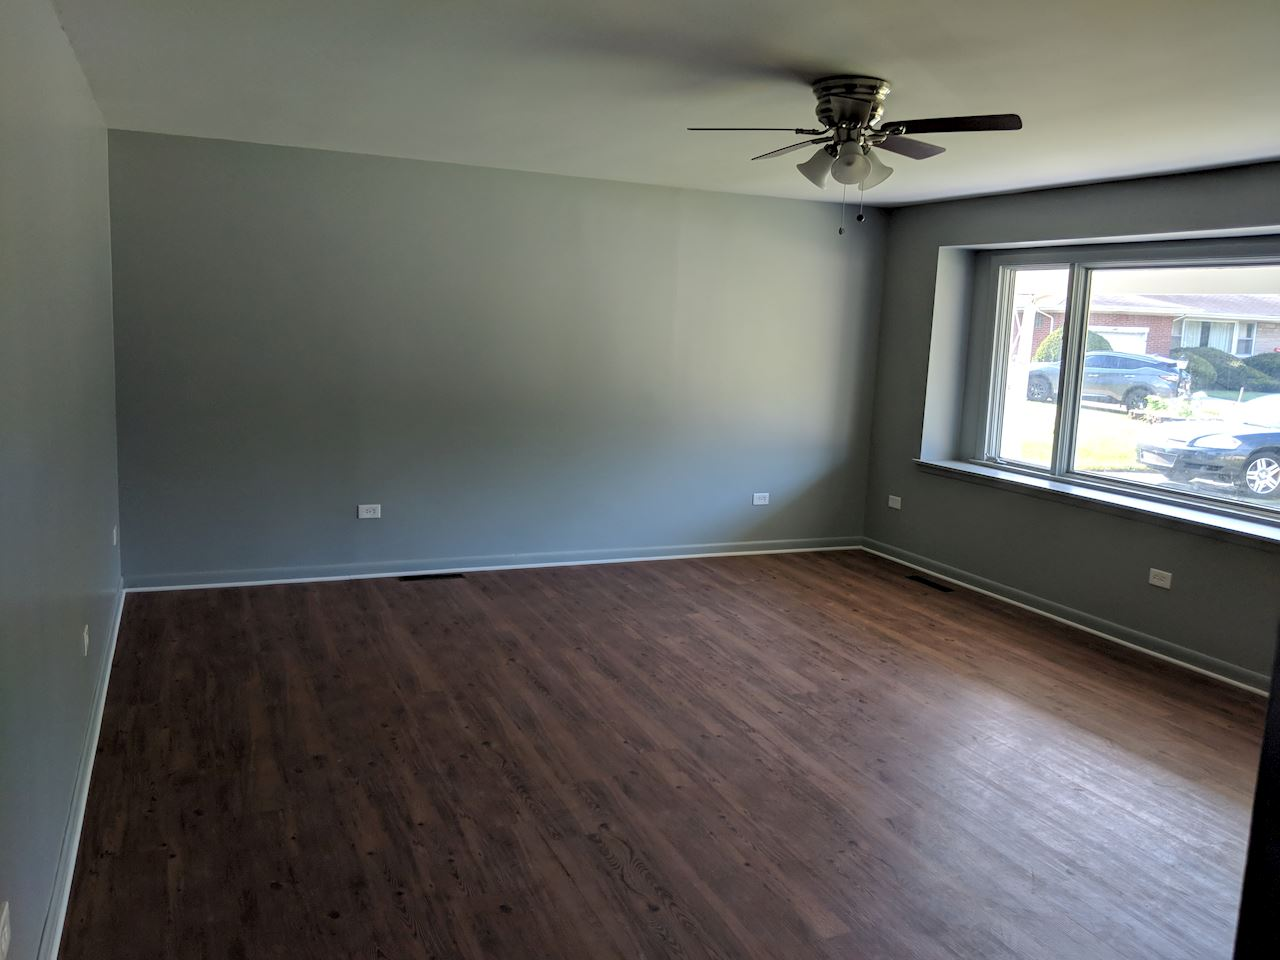 investment property - 505 E 53rd Ct, Merrillville, IN 46410, Lake - image 2